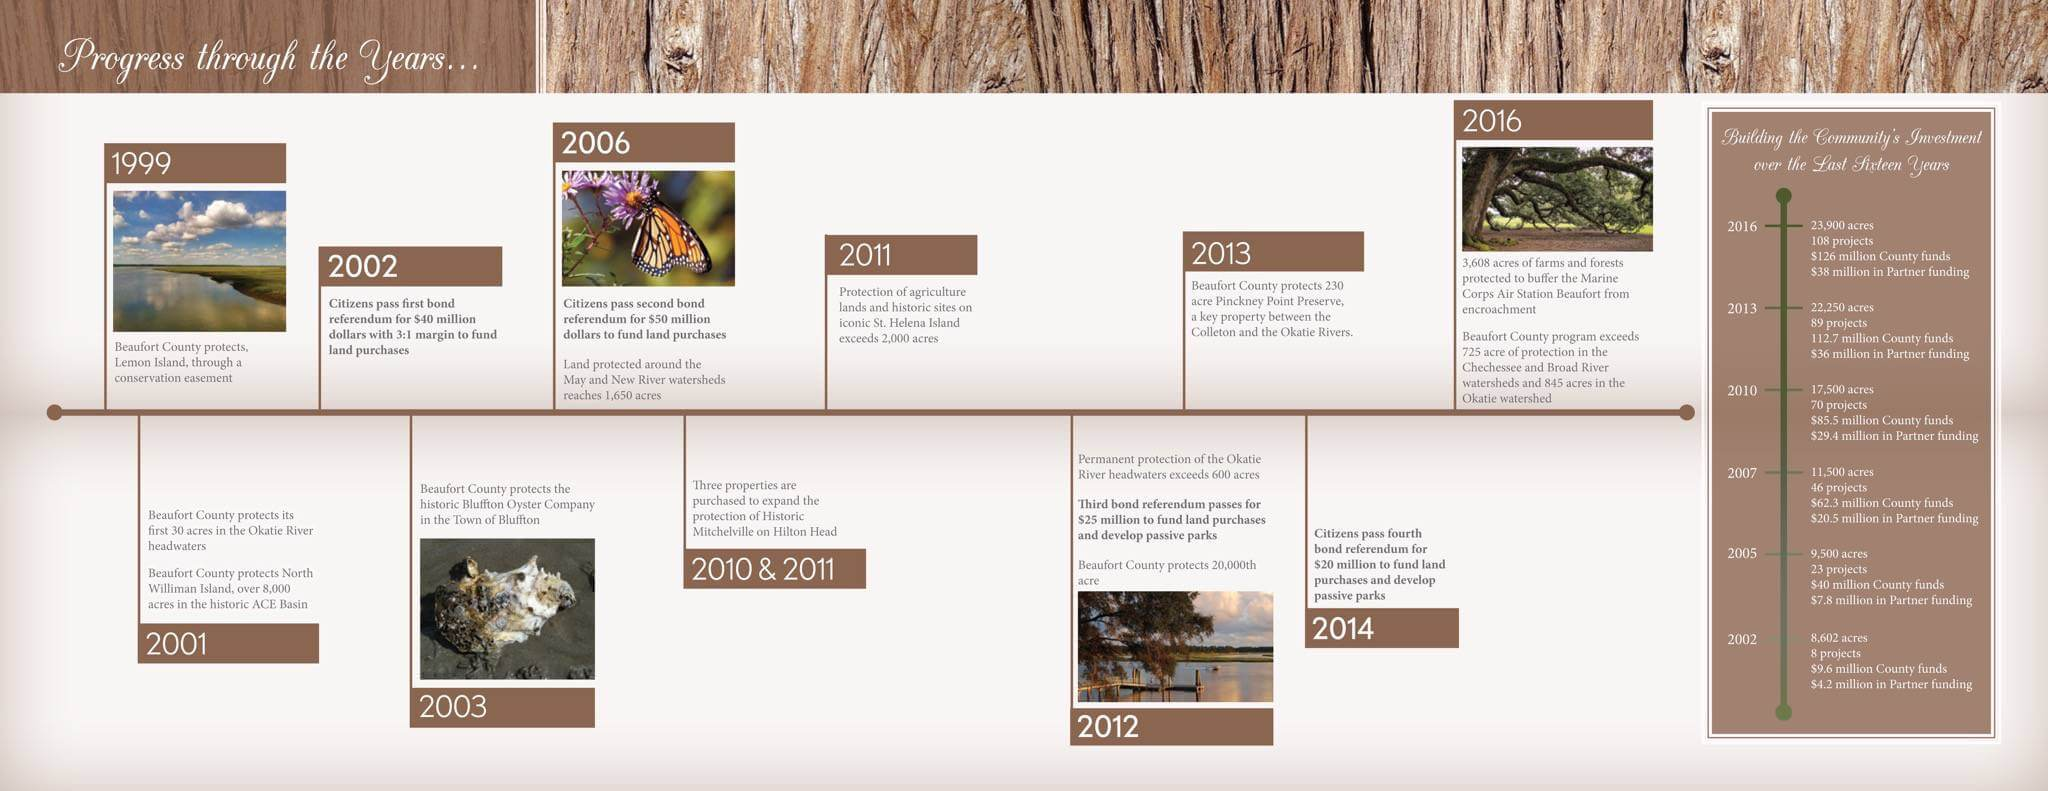 2016 Rural and Critical Annual Report Timeline